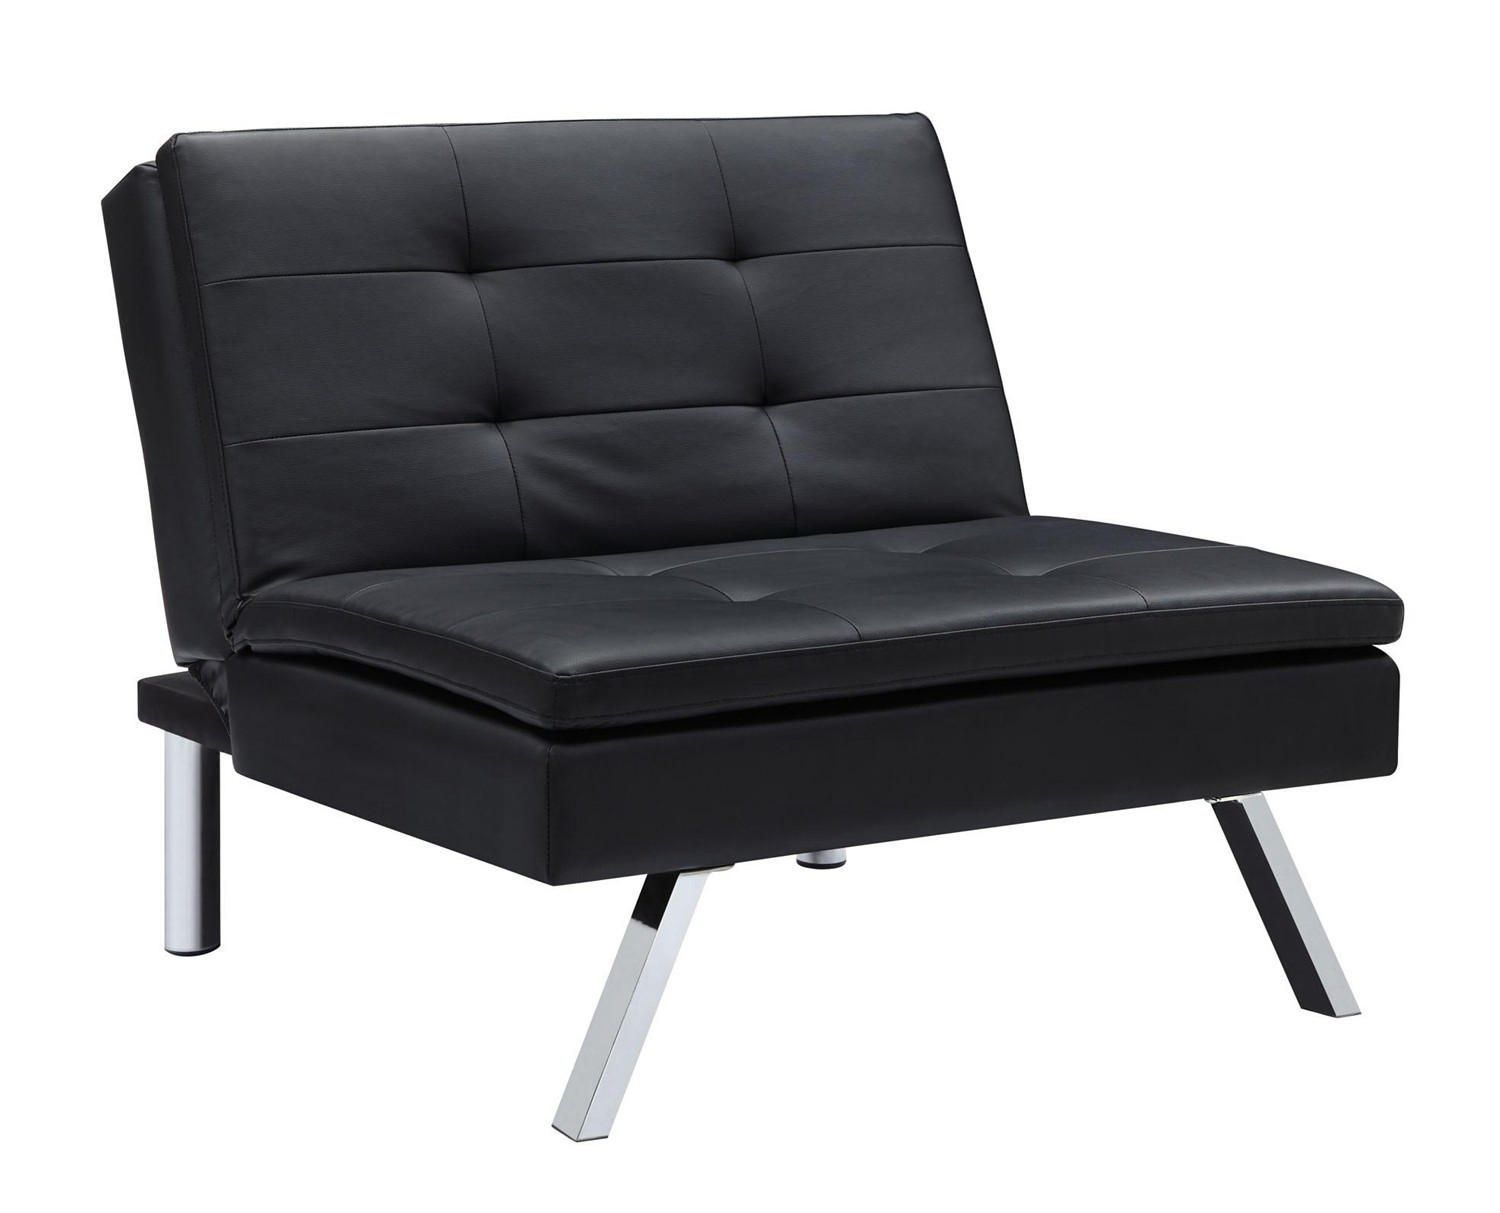 DHP Chelsea Black Faux Leather Convertible Chair